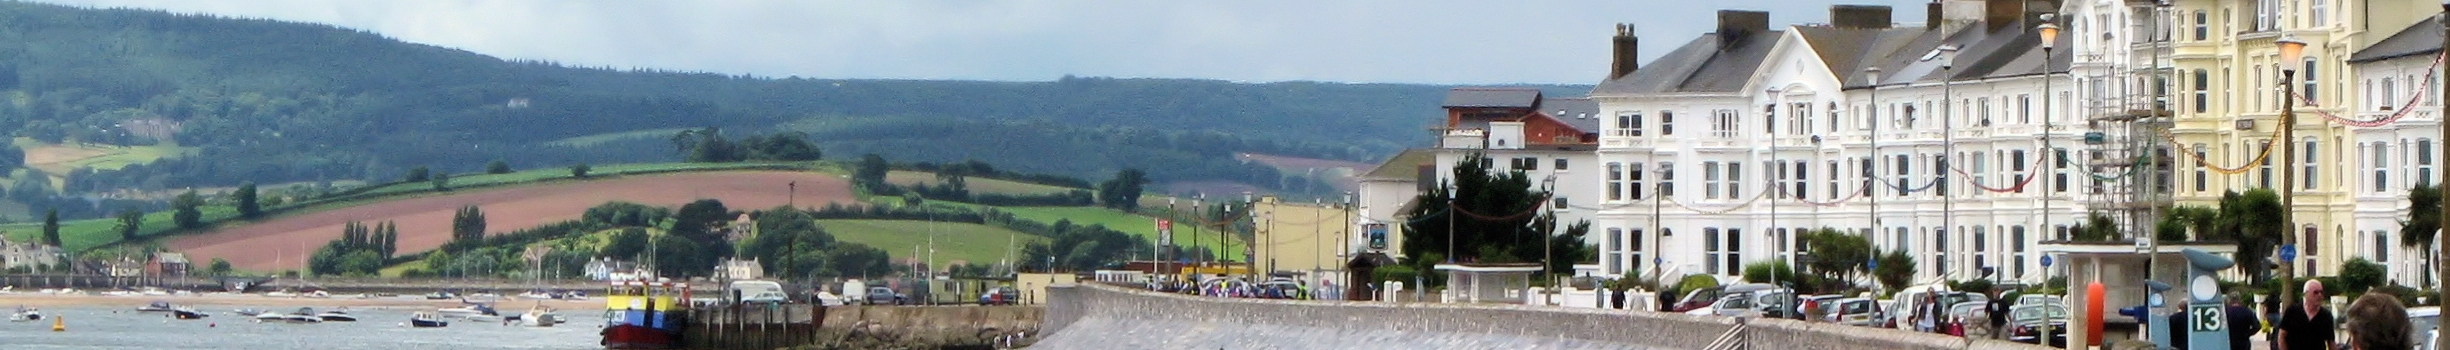 exmouth england � travel guide at wikivoyage